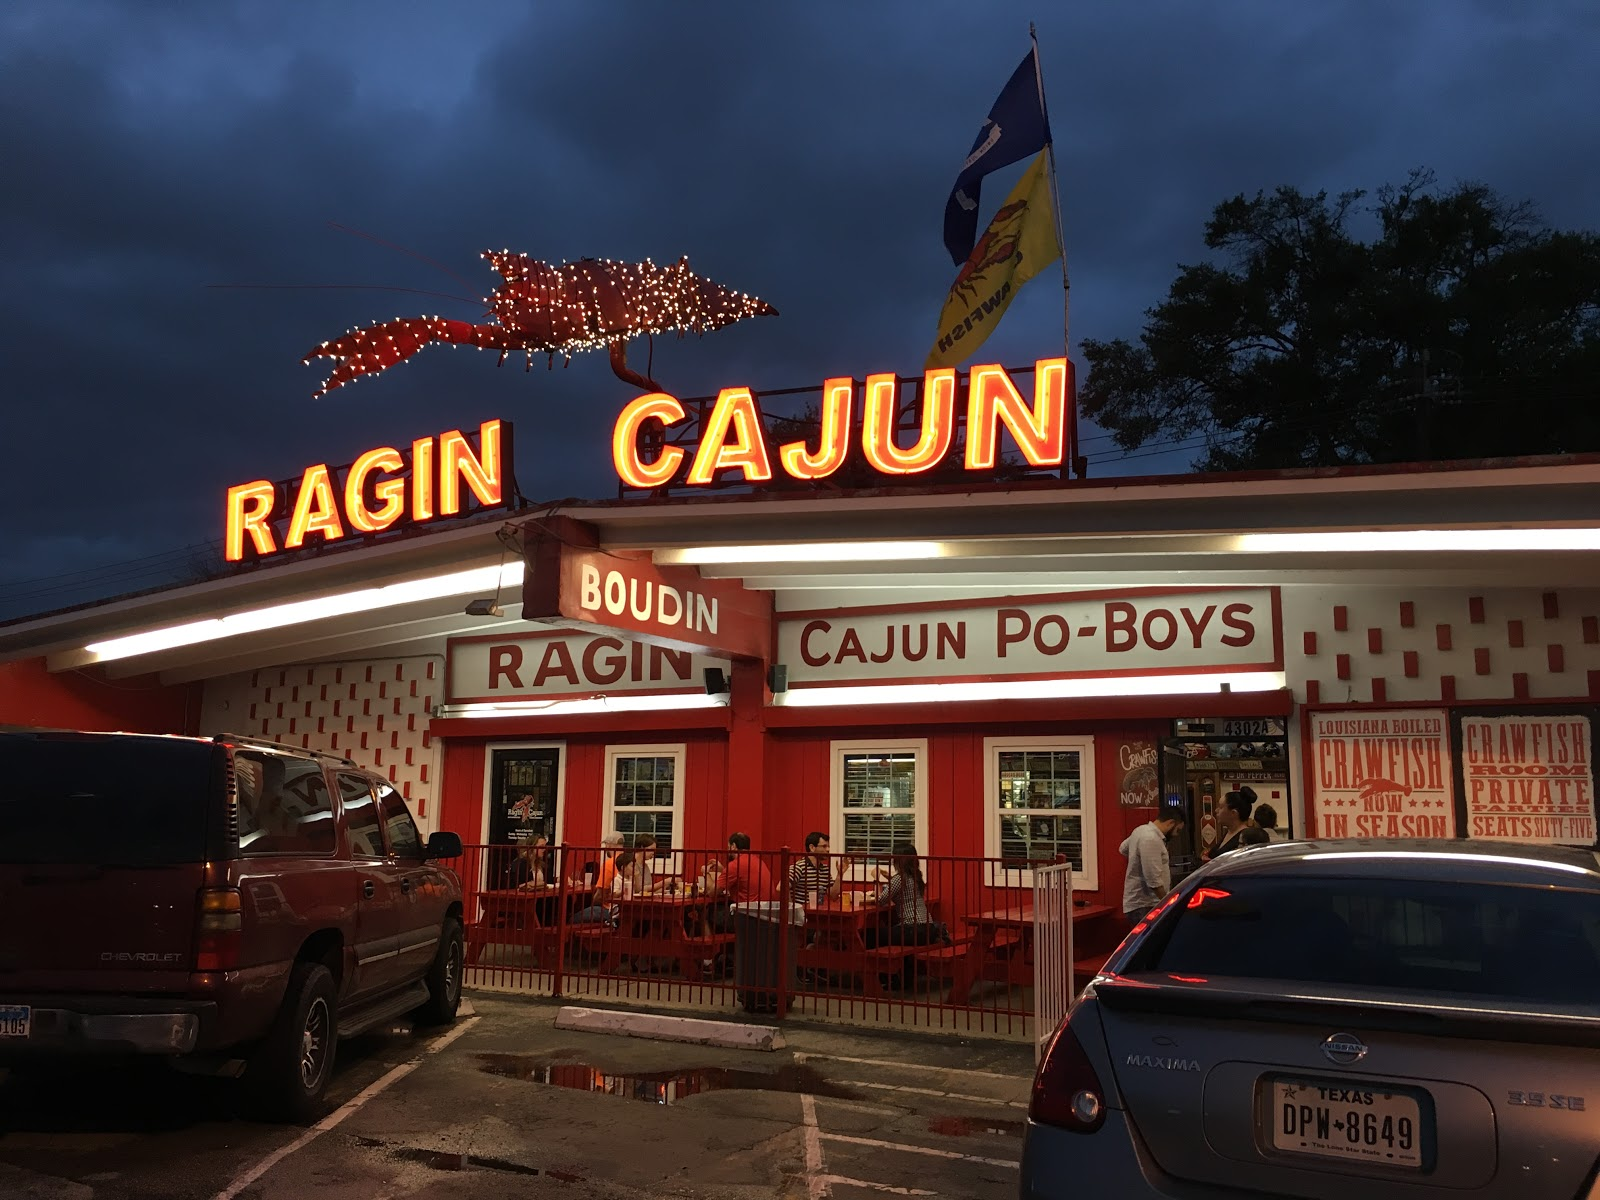 Ragin Cajun crawfish seafood Gulf shrimp oysters